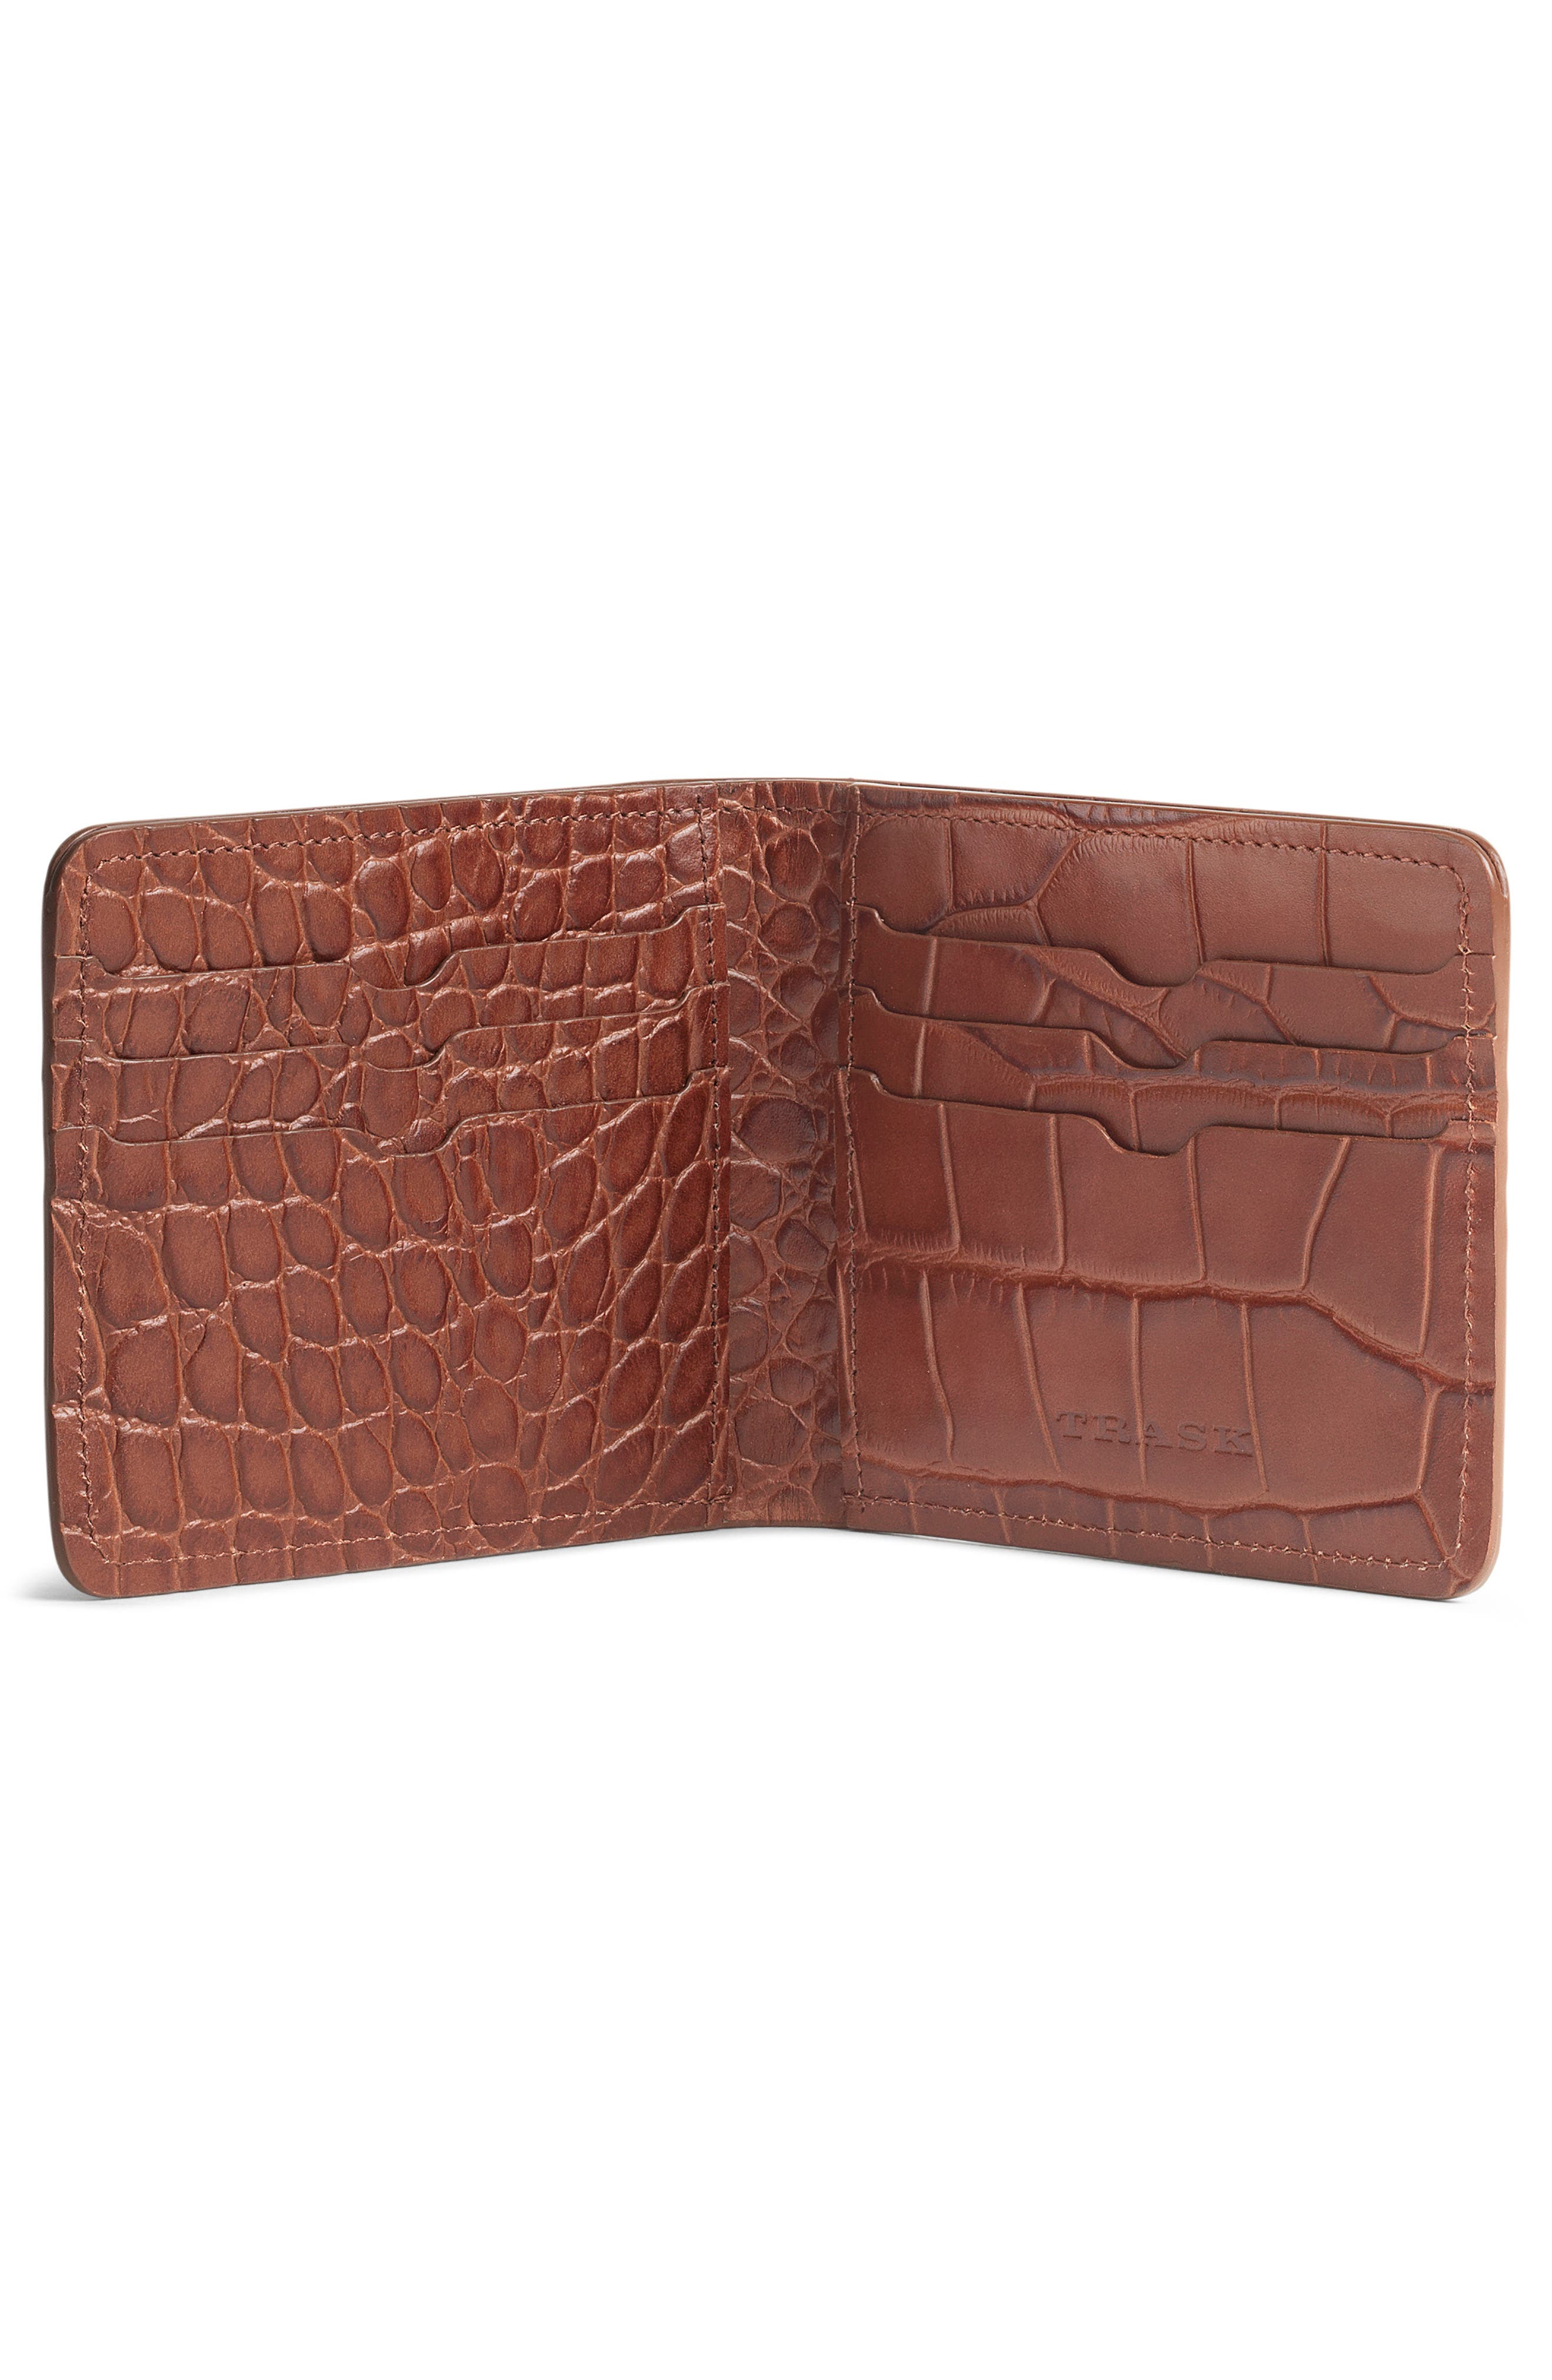 'Jackson' Slimfold Embossed Leather Wallet,                             Alternate thumbnail 2, color,                             SCOTCH